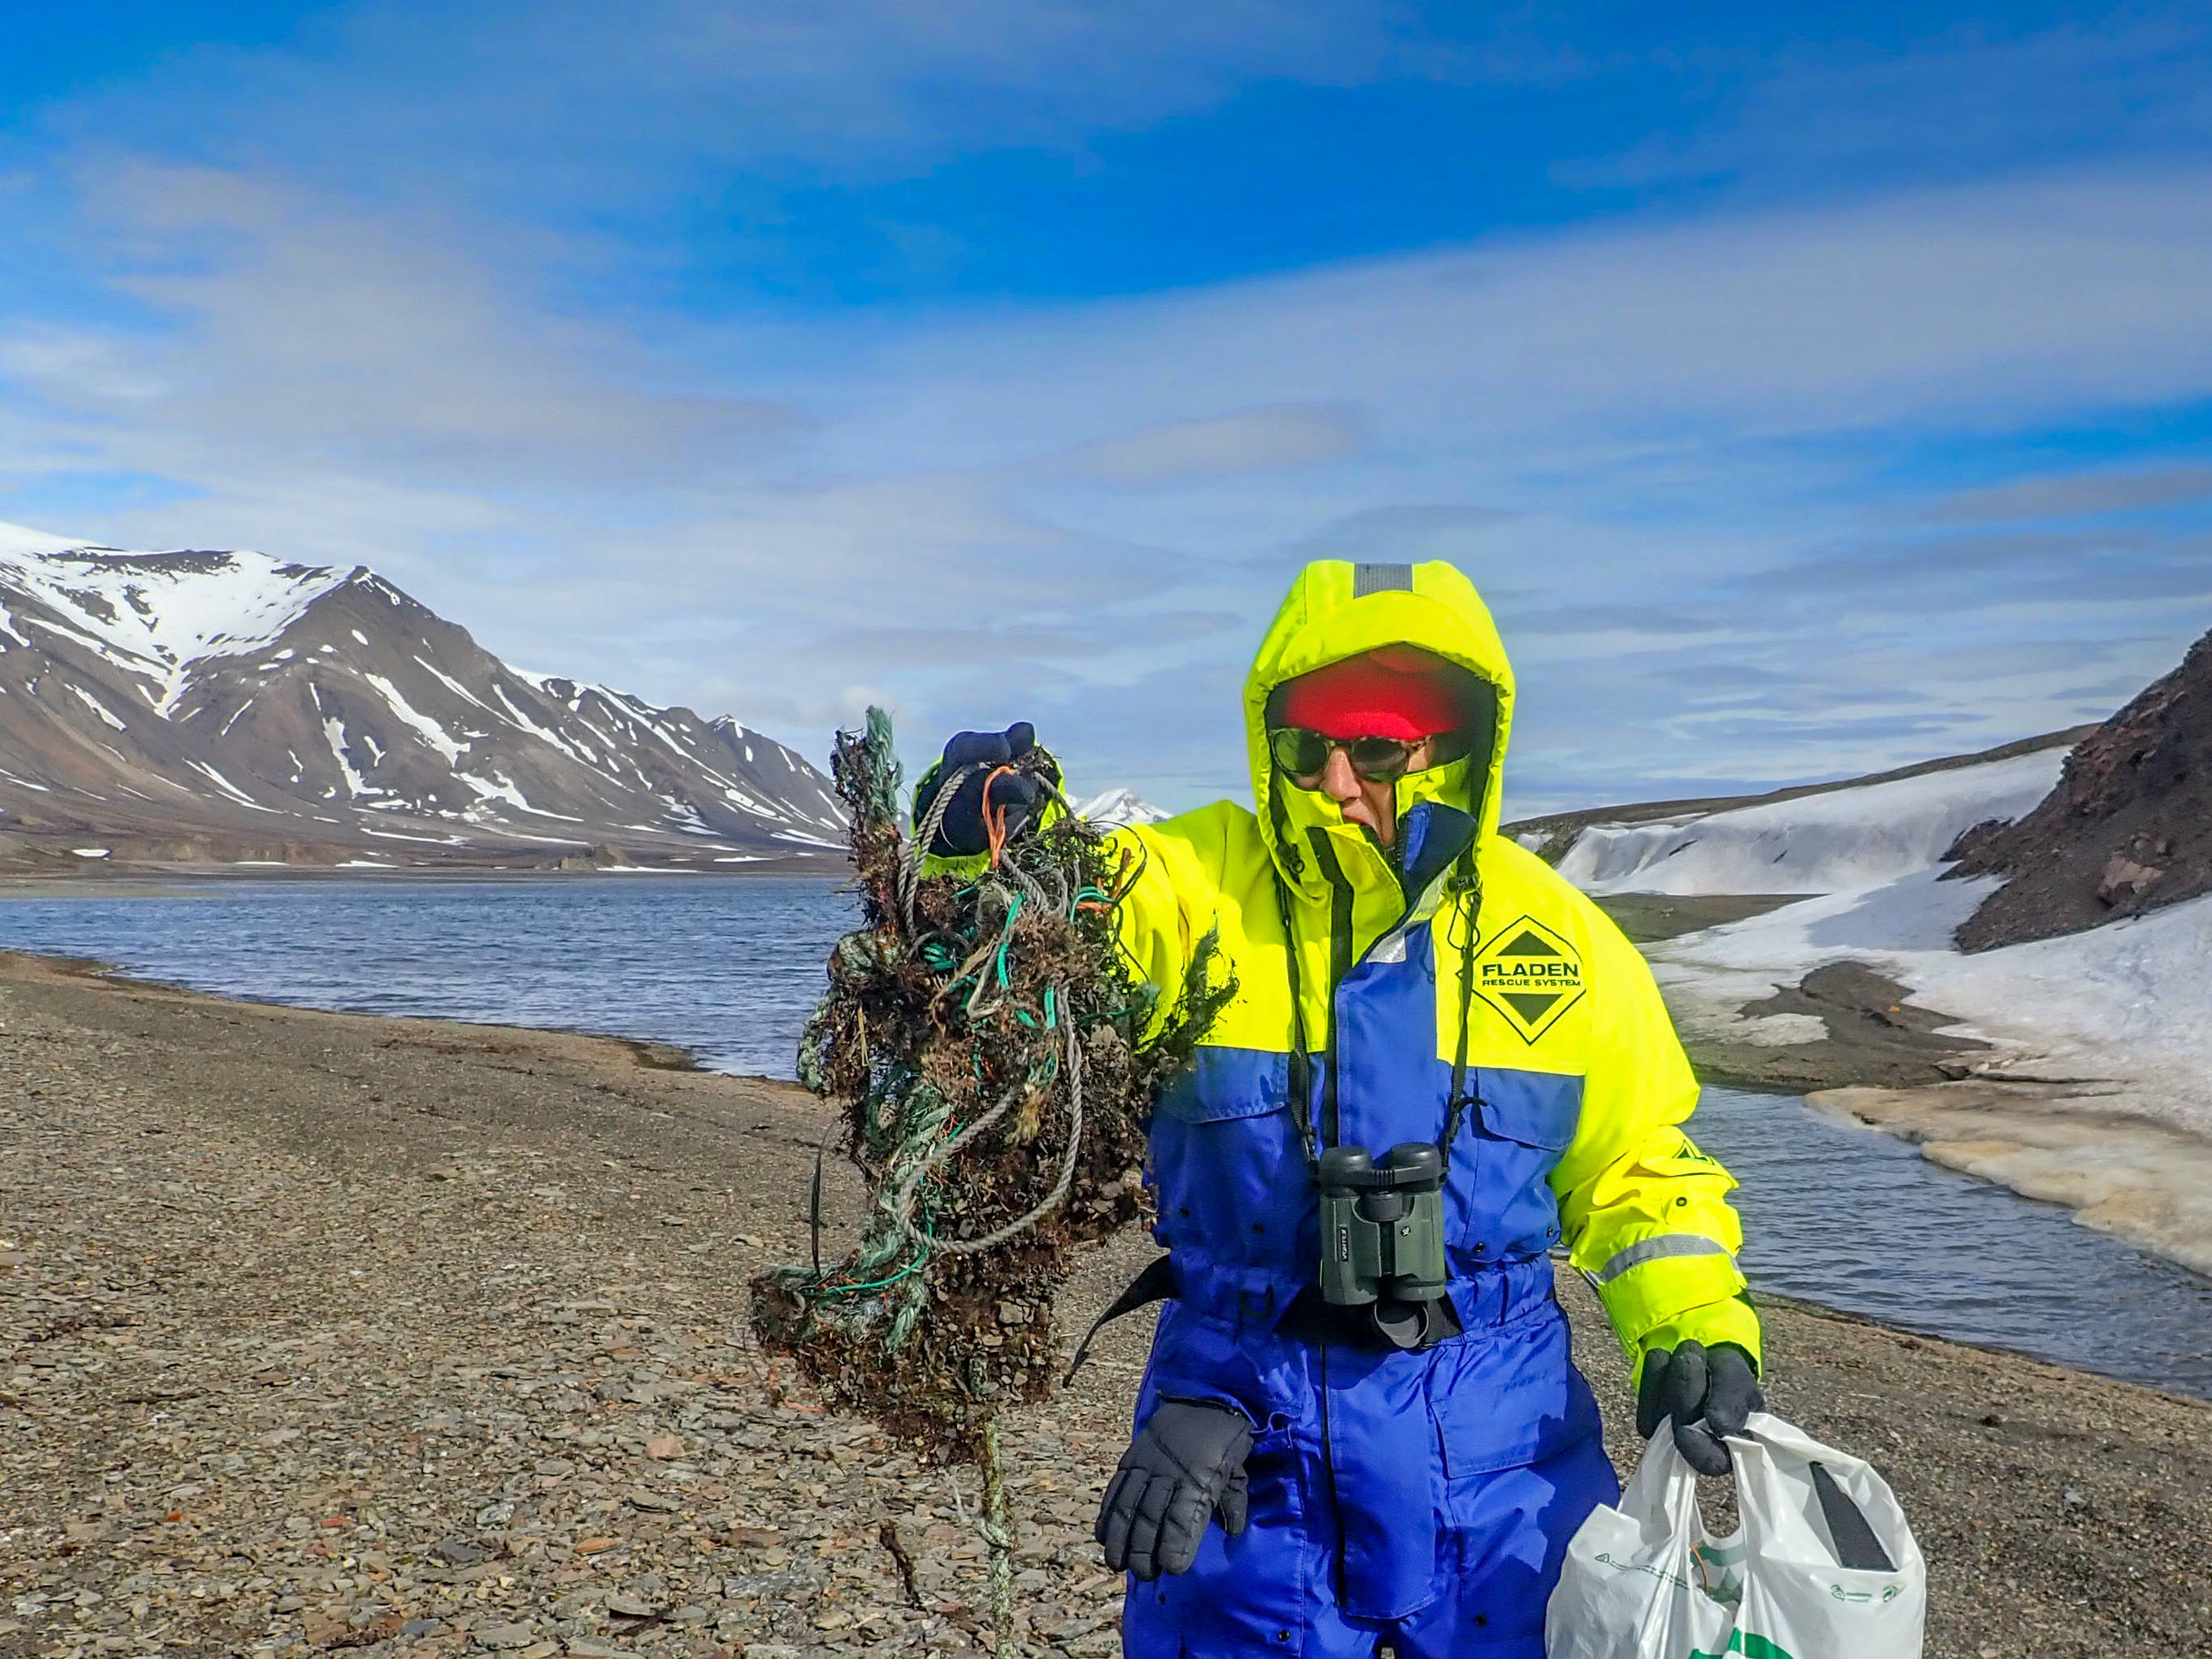 Removing plastic pollution from remote arctic beaches